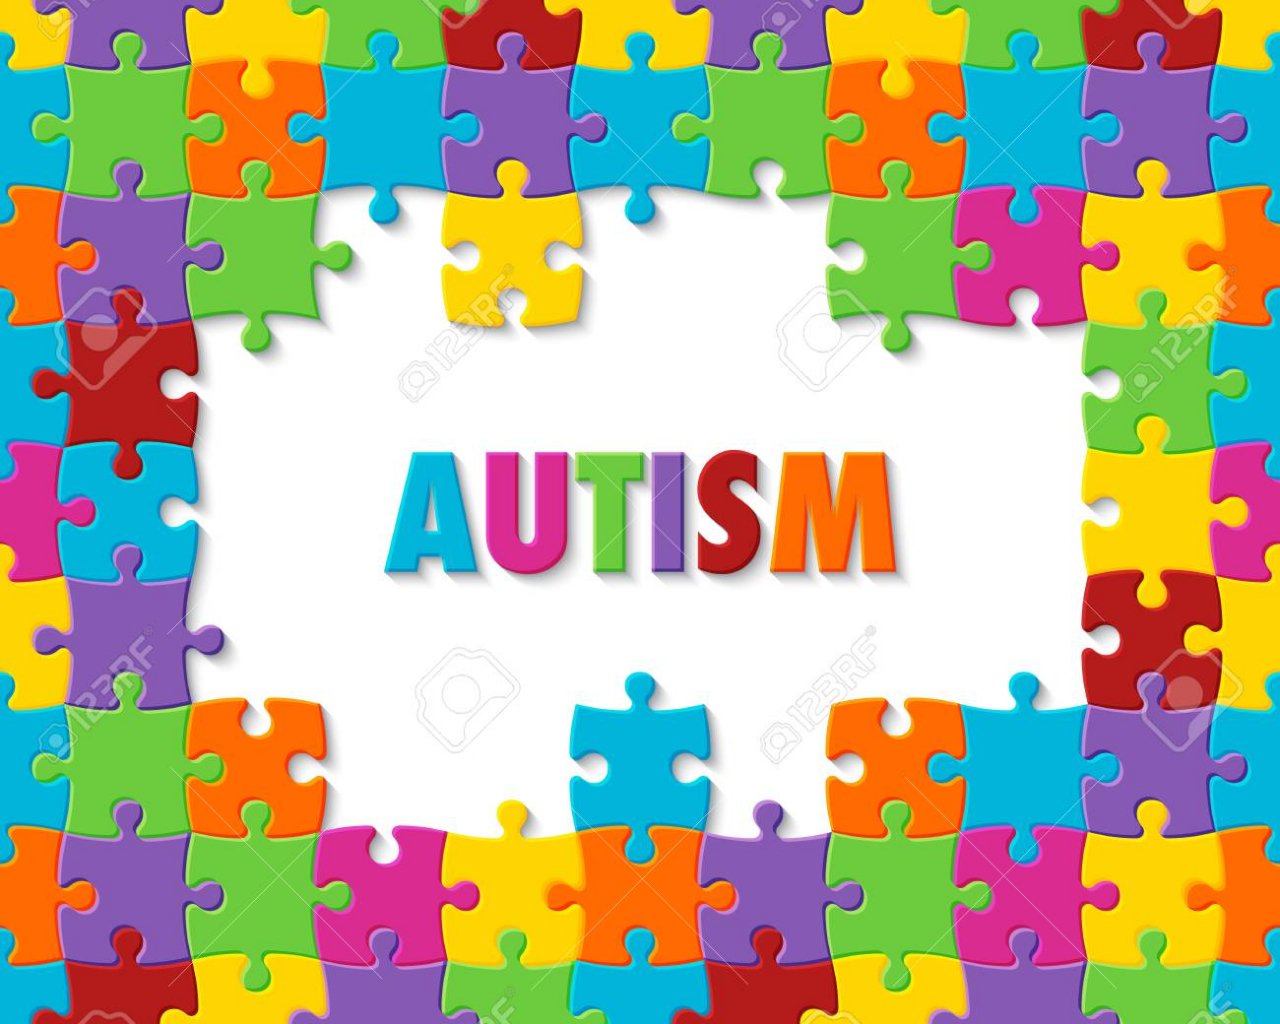 Free Download World Autism Awareness Day Colorful Puzzle Background Royalty 1300x1300 For Your Desktop Mobile Tablet Explore 50 Awareness Background Awareness Background Cancer Awareness Wallpaper Breast Cancer Awareness Wallpaper